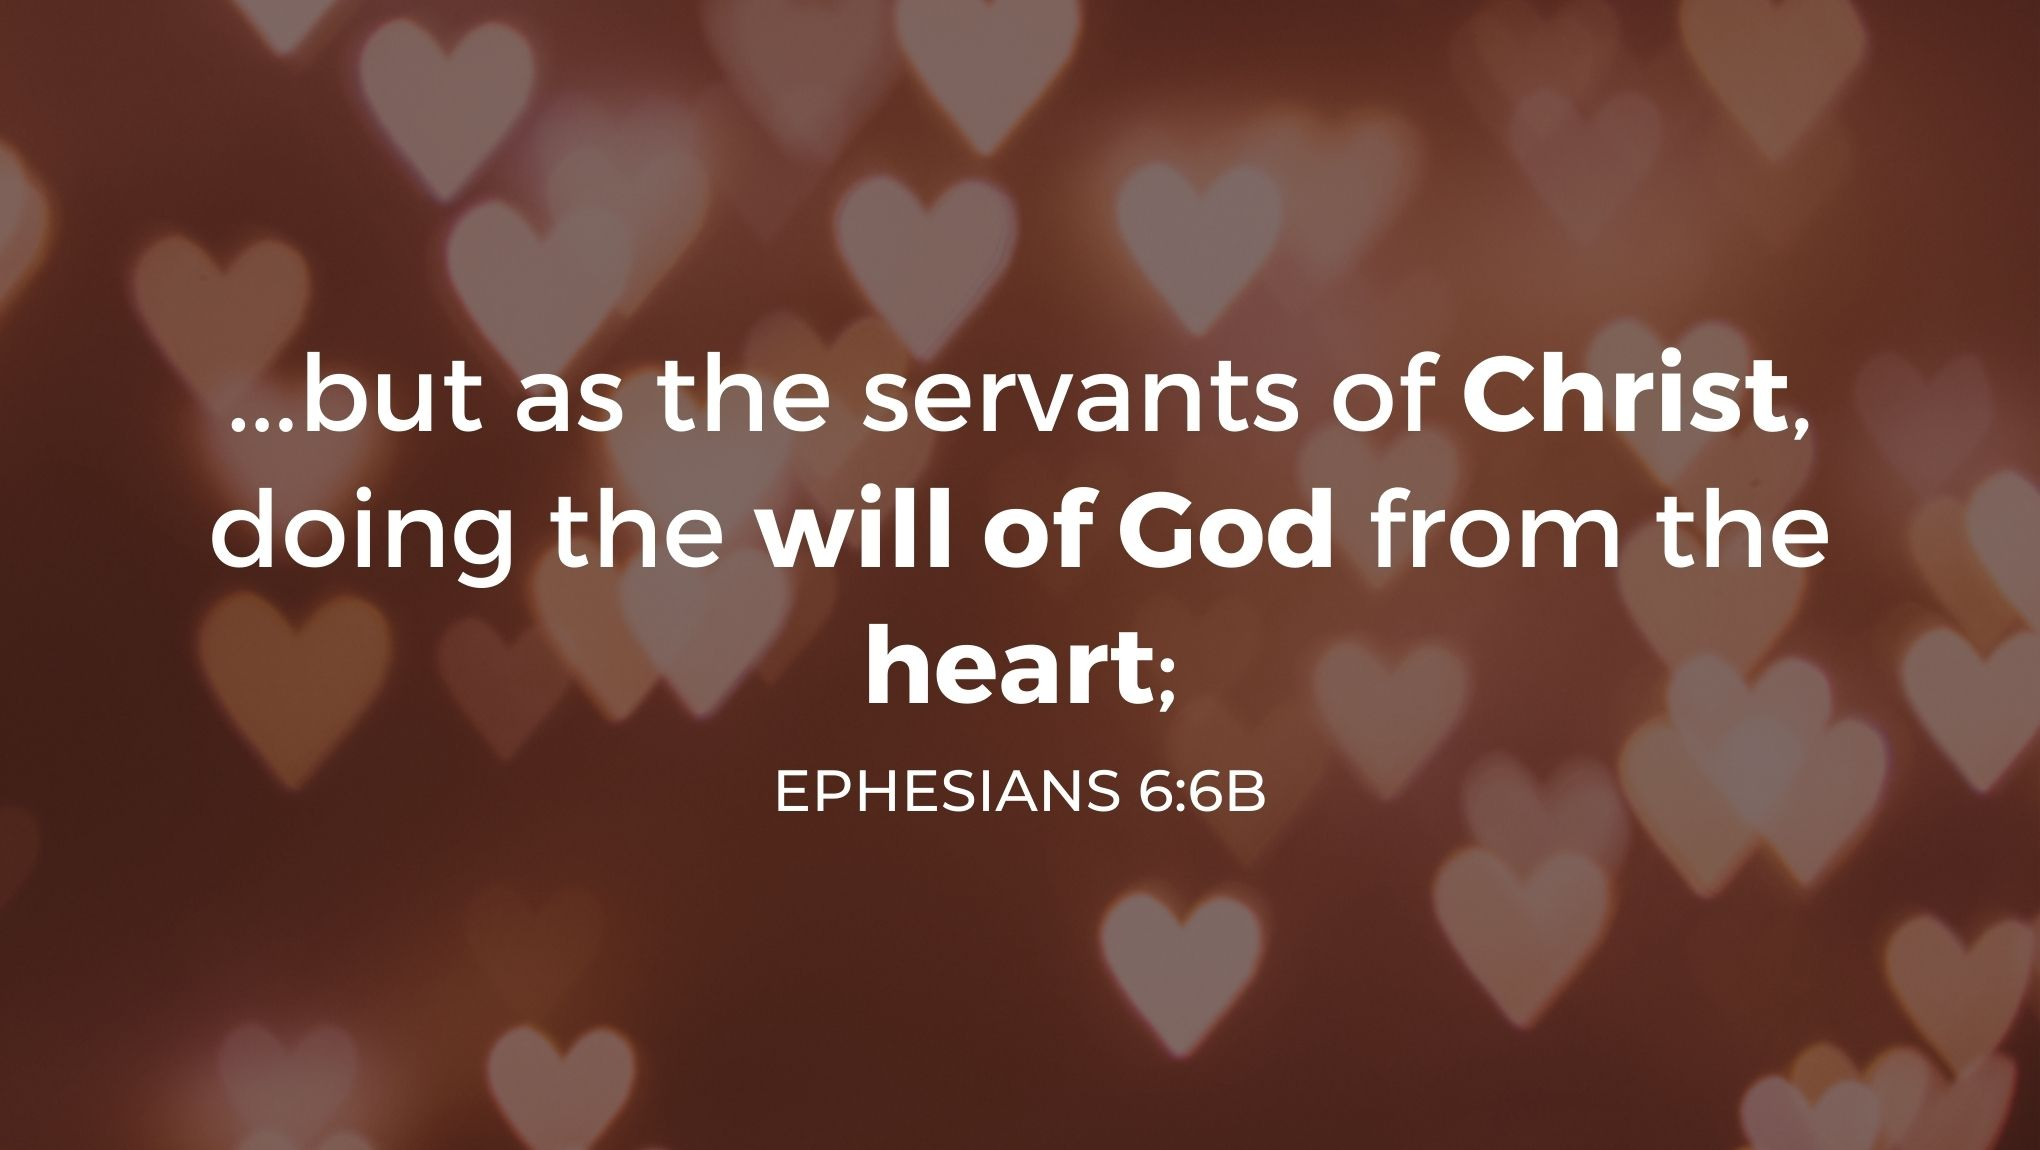 but as the servants of Christ, doing the will of God from the heart; (2)